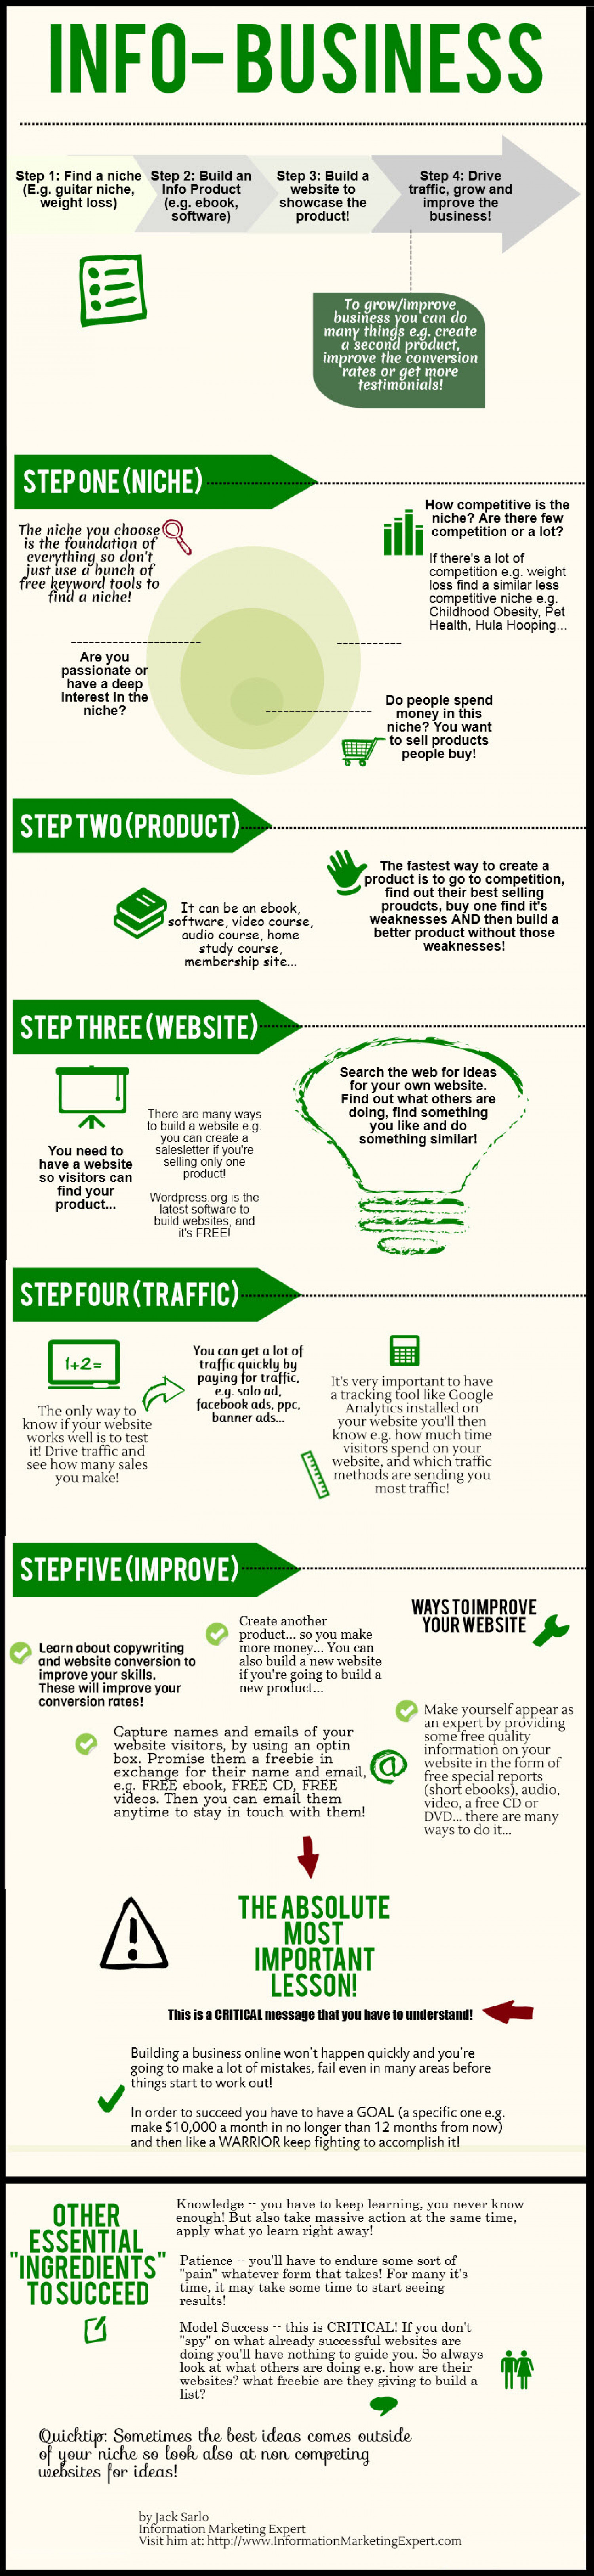 How To Build Info-Business in 3 Steps! Infographic